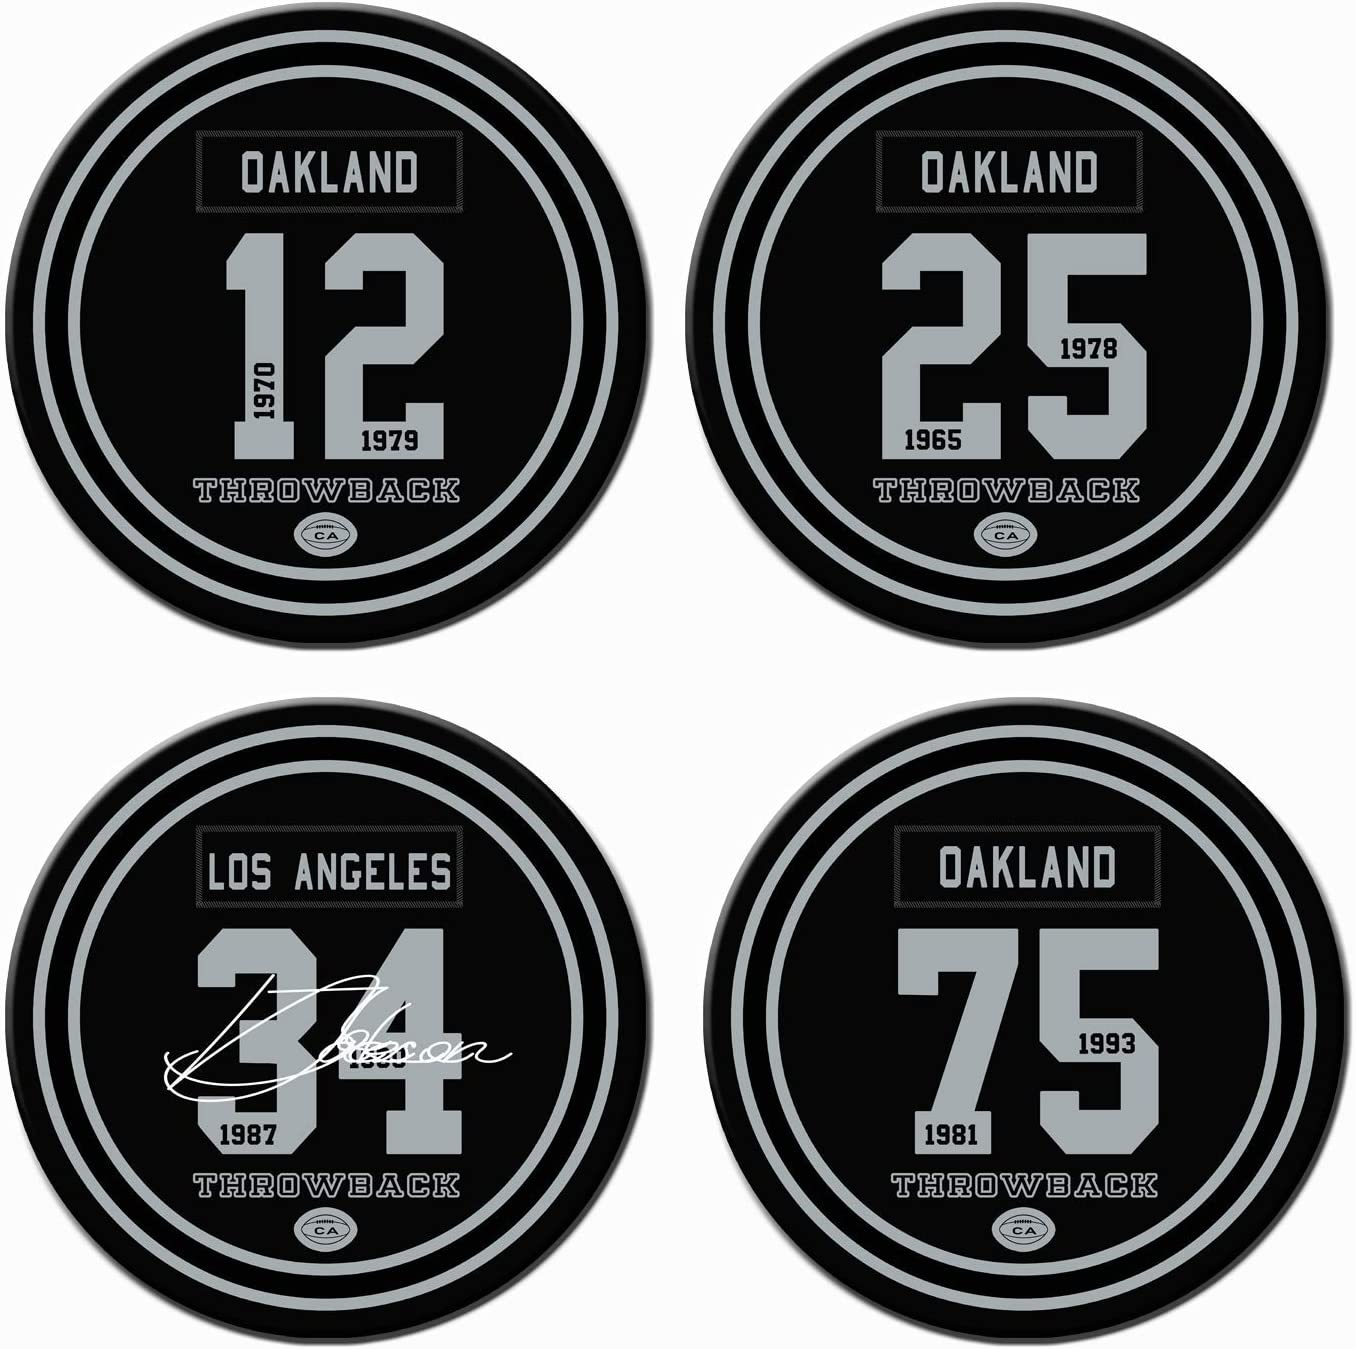 Las Vegas Oakland Football Coasters for Drinks, Ceramic Non Raider Coasters Set of 4, for Raider Man Cave Cup Table Home Deco Mug, Raider Party Supplies Decorations, Raider Gifts for Men Women